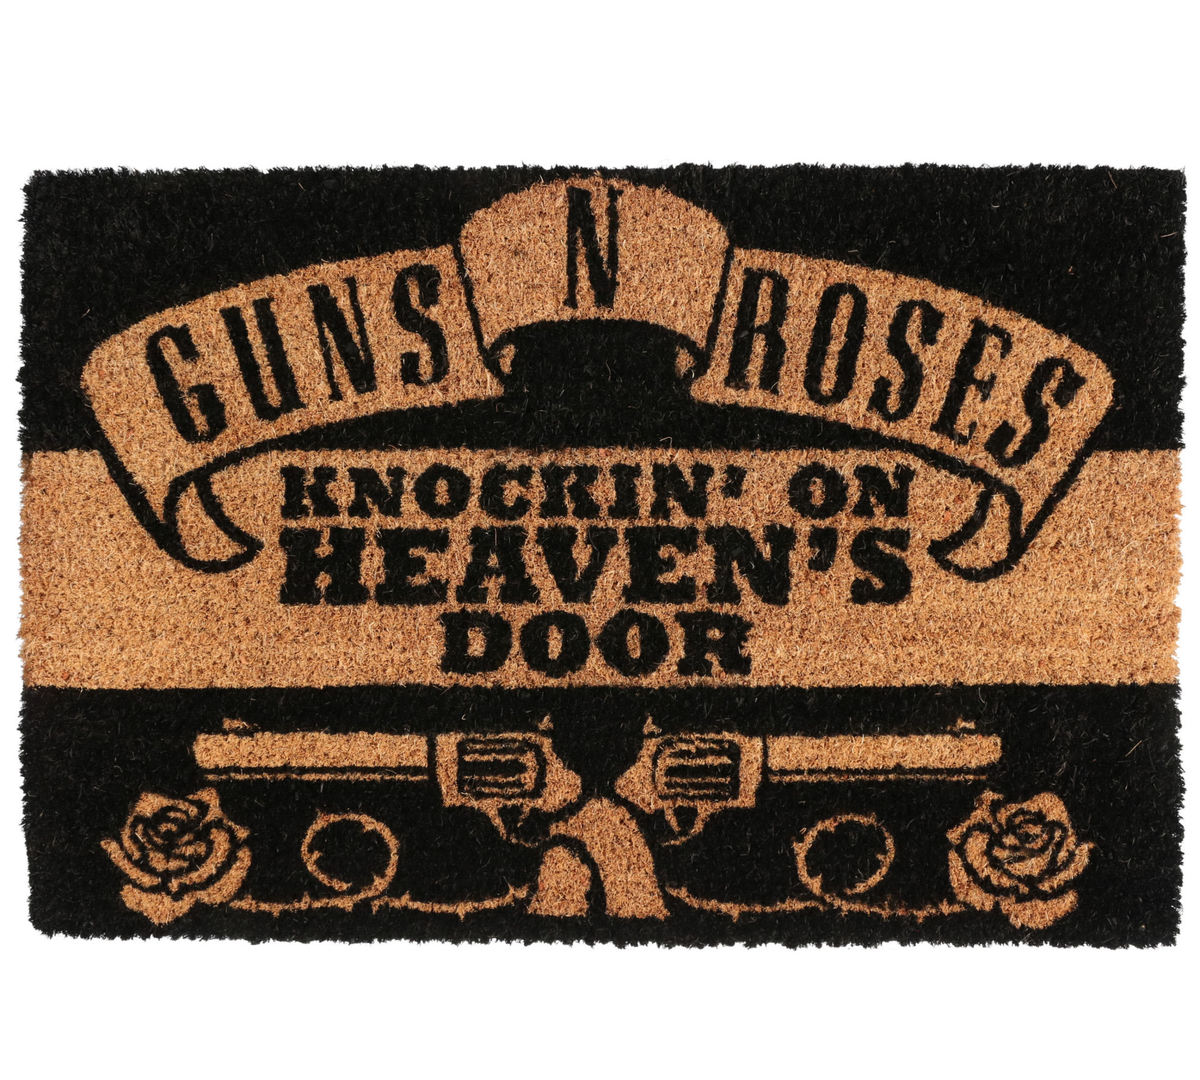 rohožka Guns N' Roses - (Knockin' On Heaven's Door) - PYRAMID POSTERS - GP85164